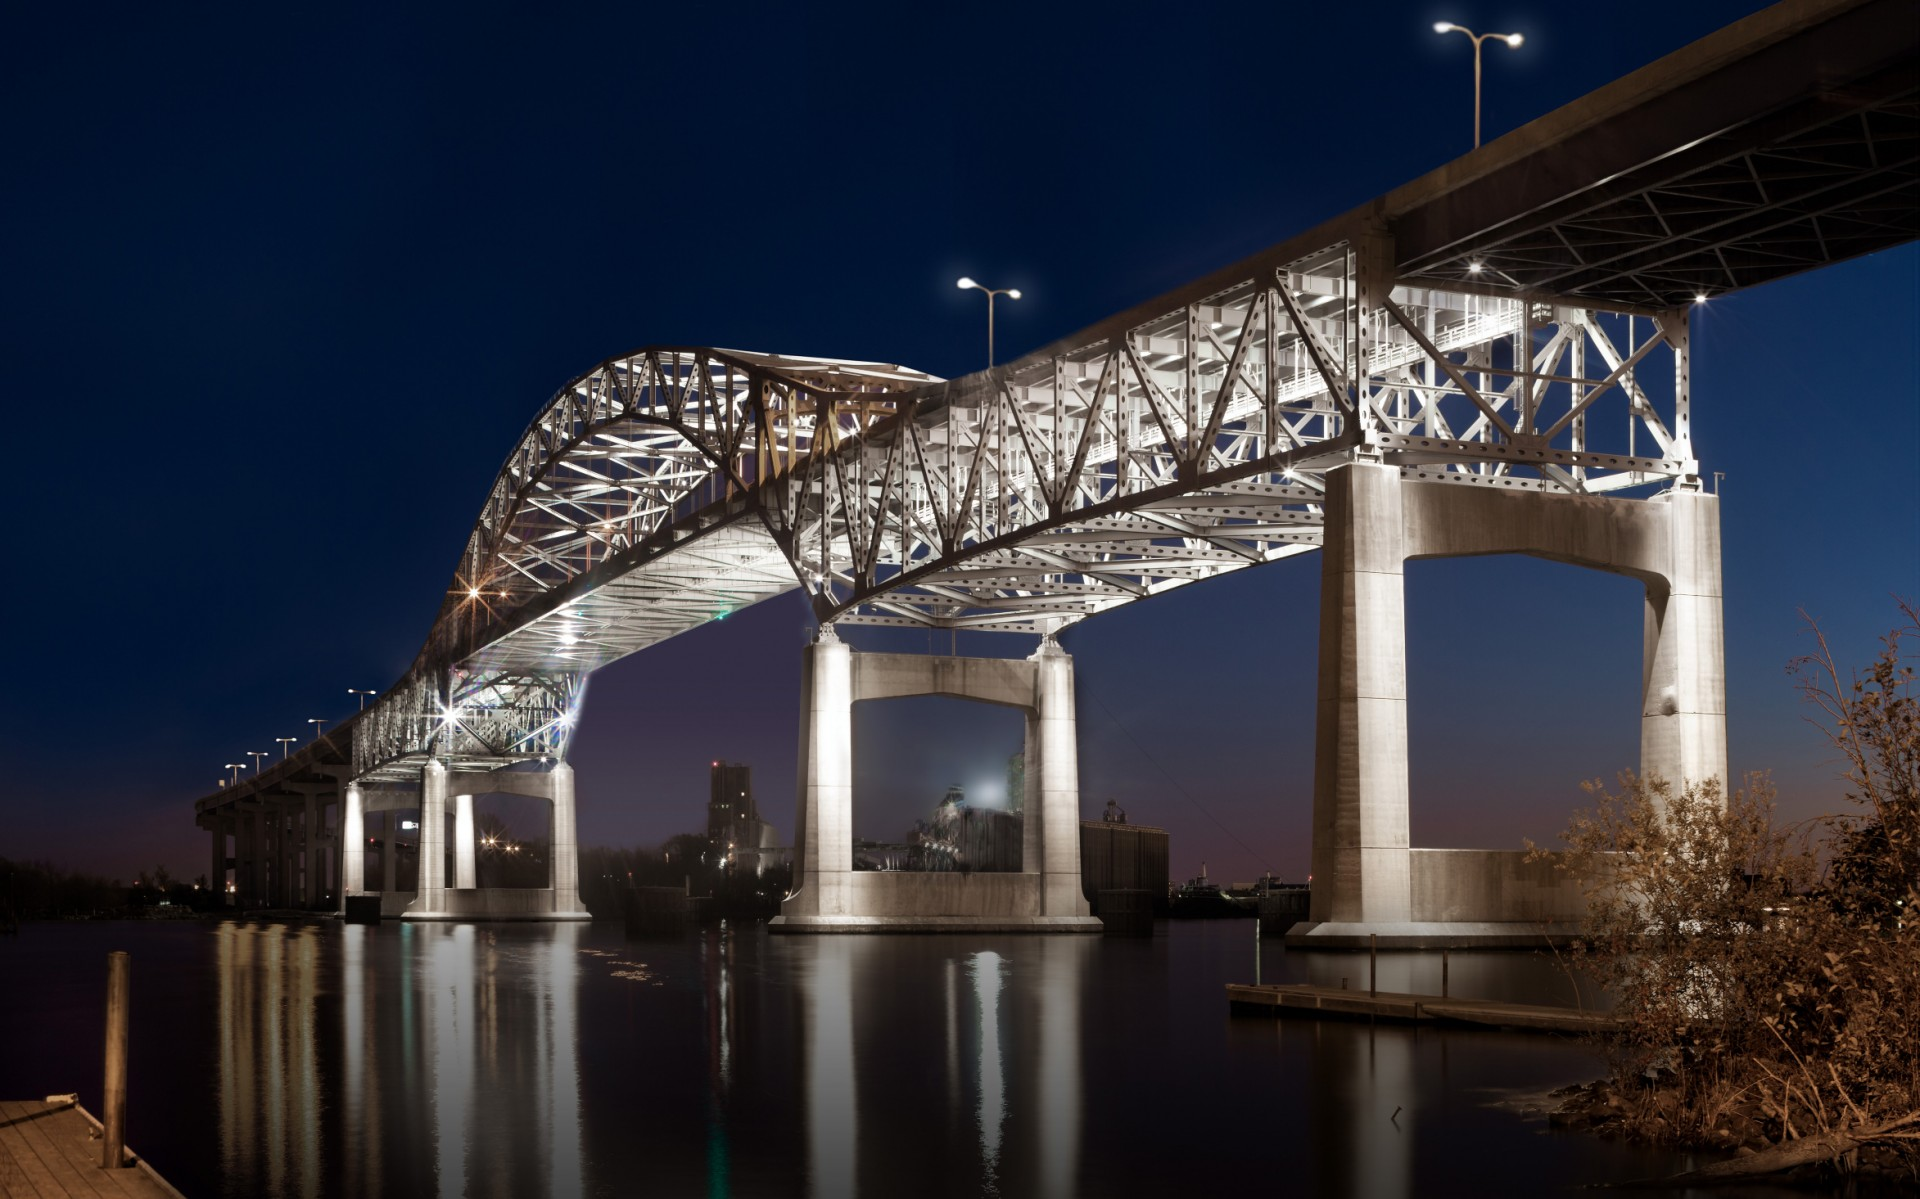 The Minnesota and Wisconsin Departments of Transportation used Lumentalk technology to modernize the lighting system on the Blatnik Bridge.